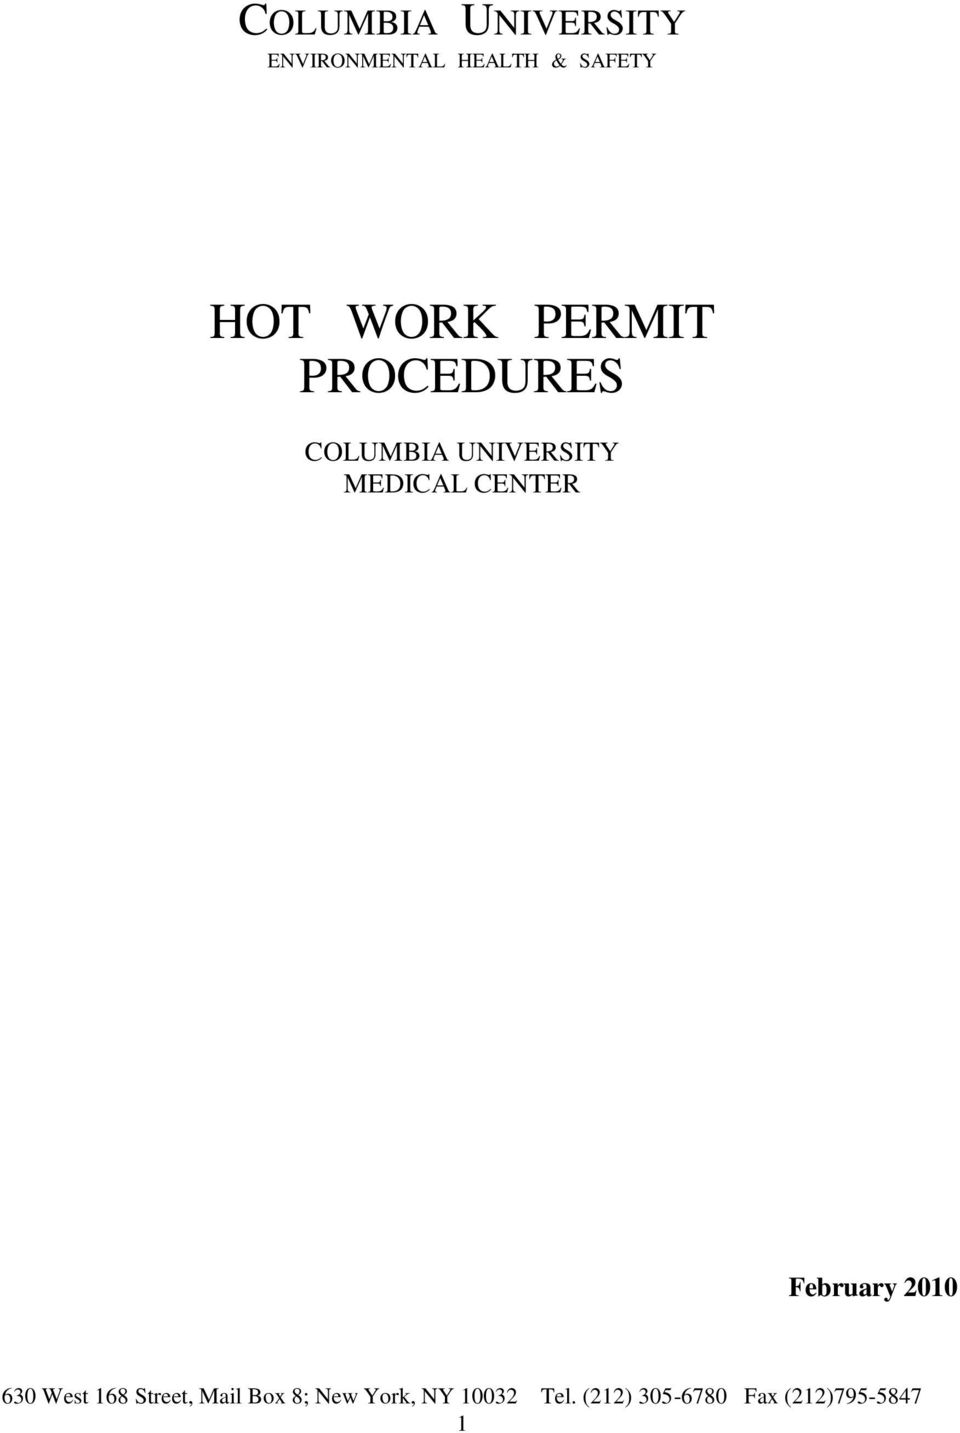 HOT WORK PERMIT PROCEDURES